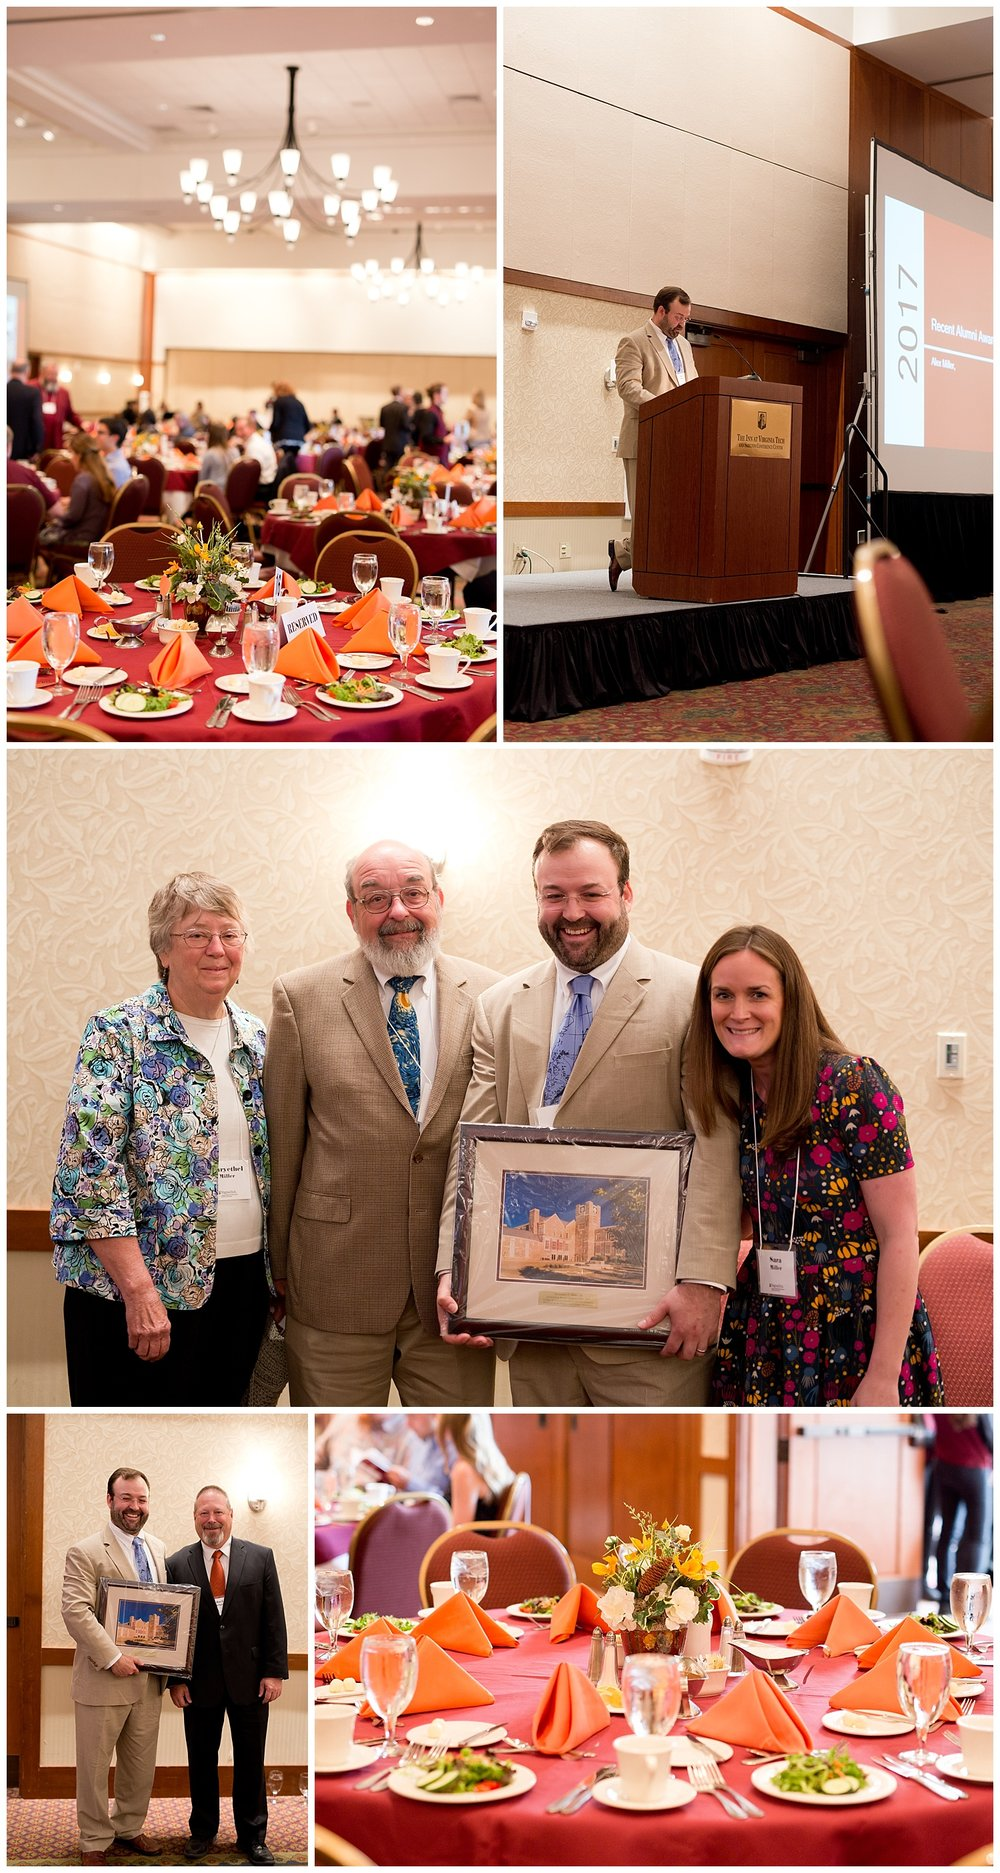 Outstanding Alumni Award Dinner at Virginia Tech